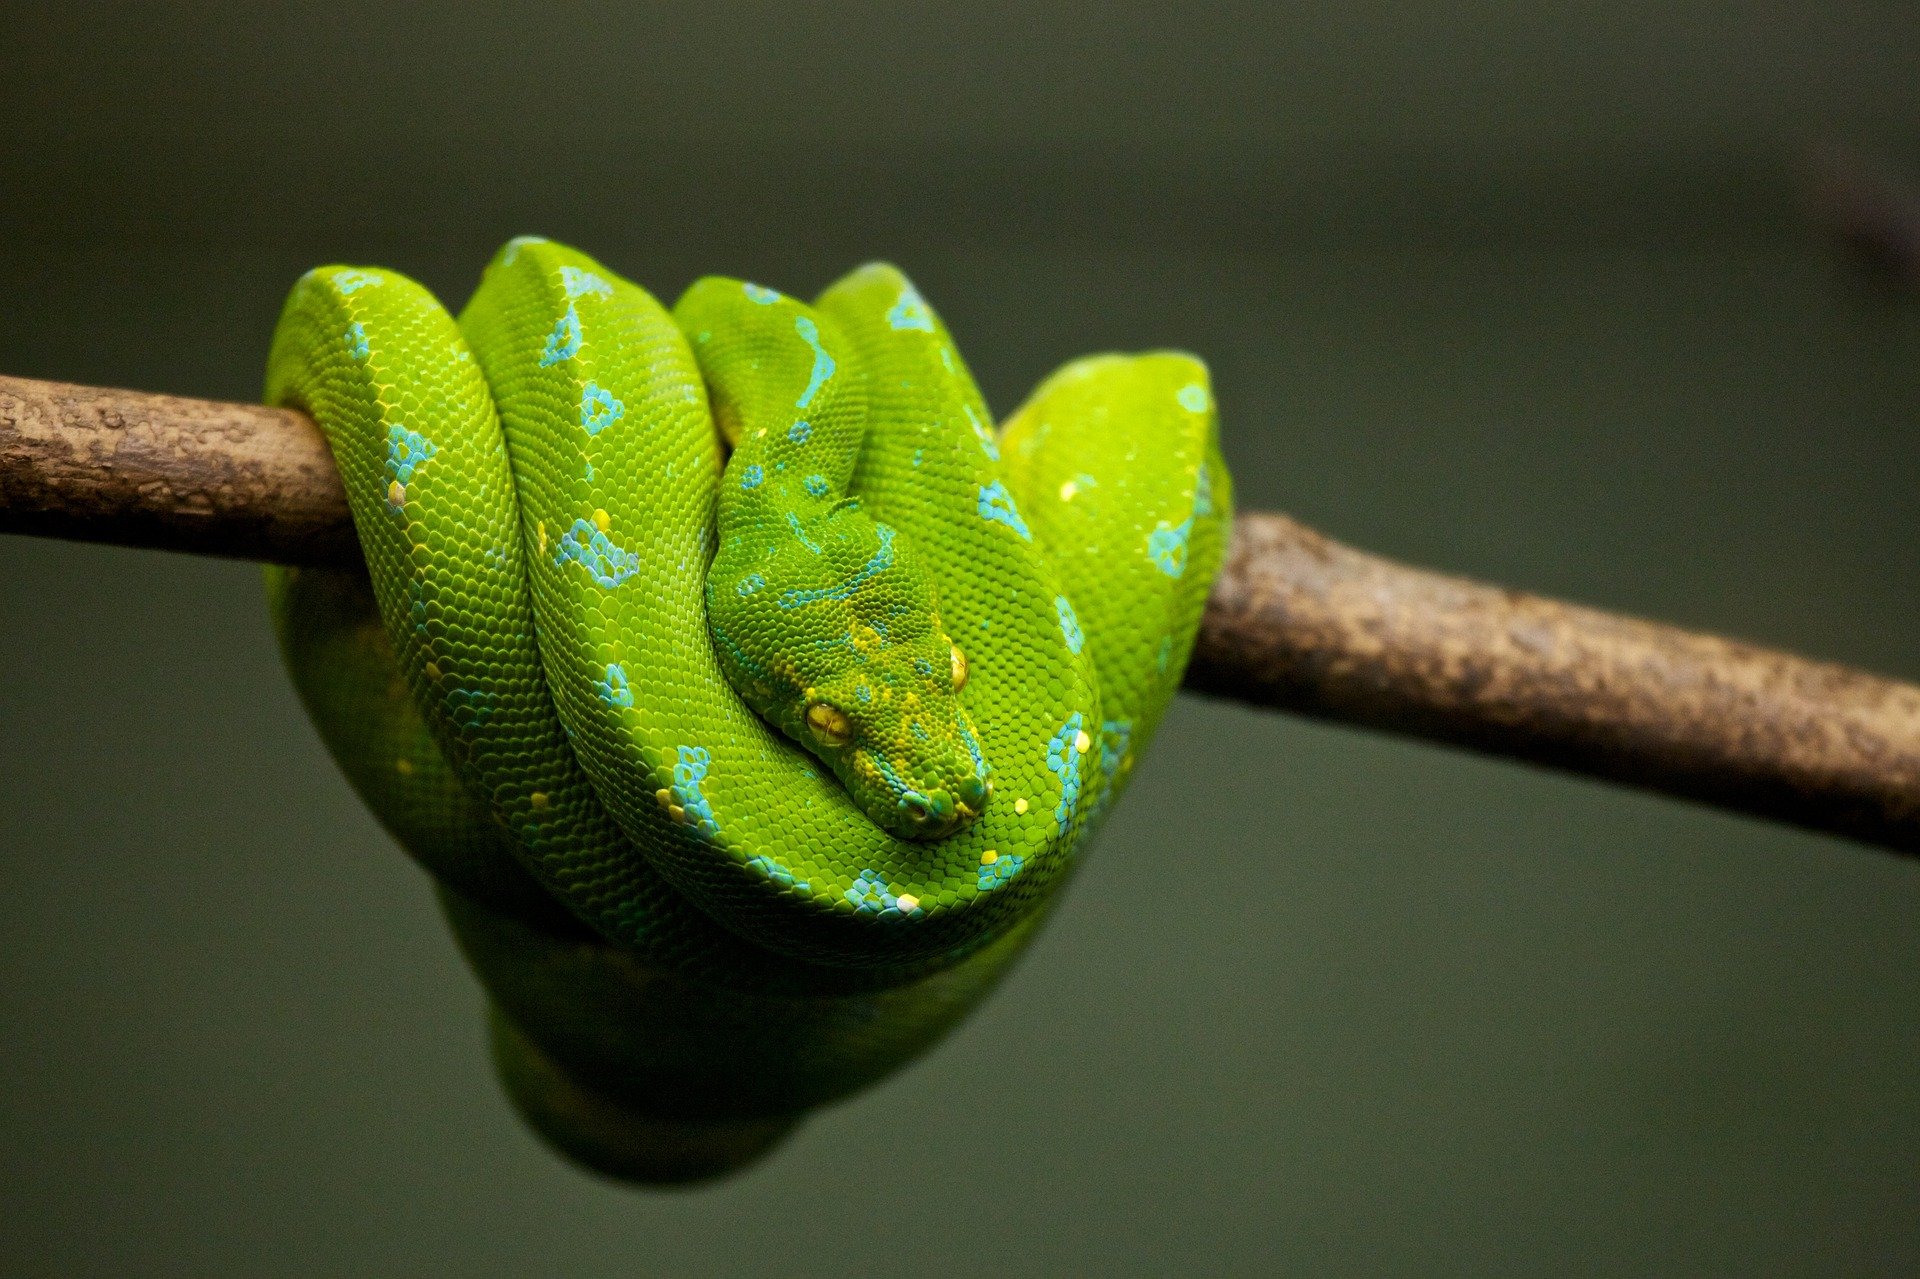 A photo of a green snake.